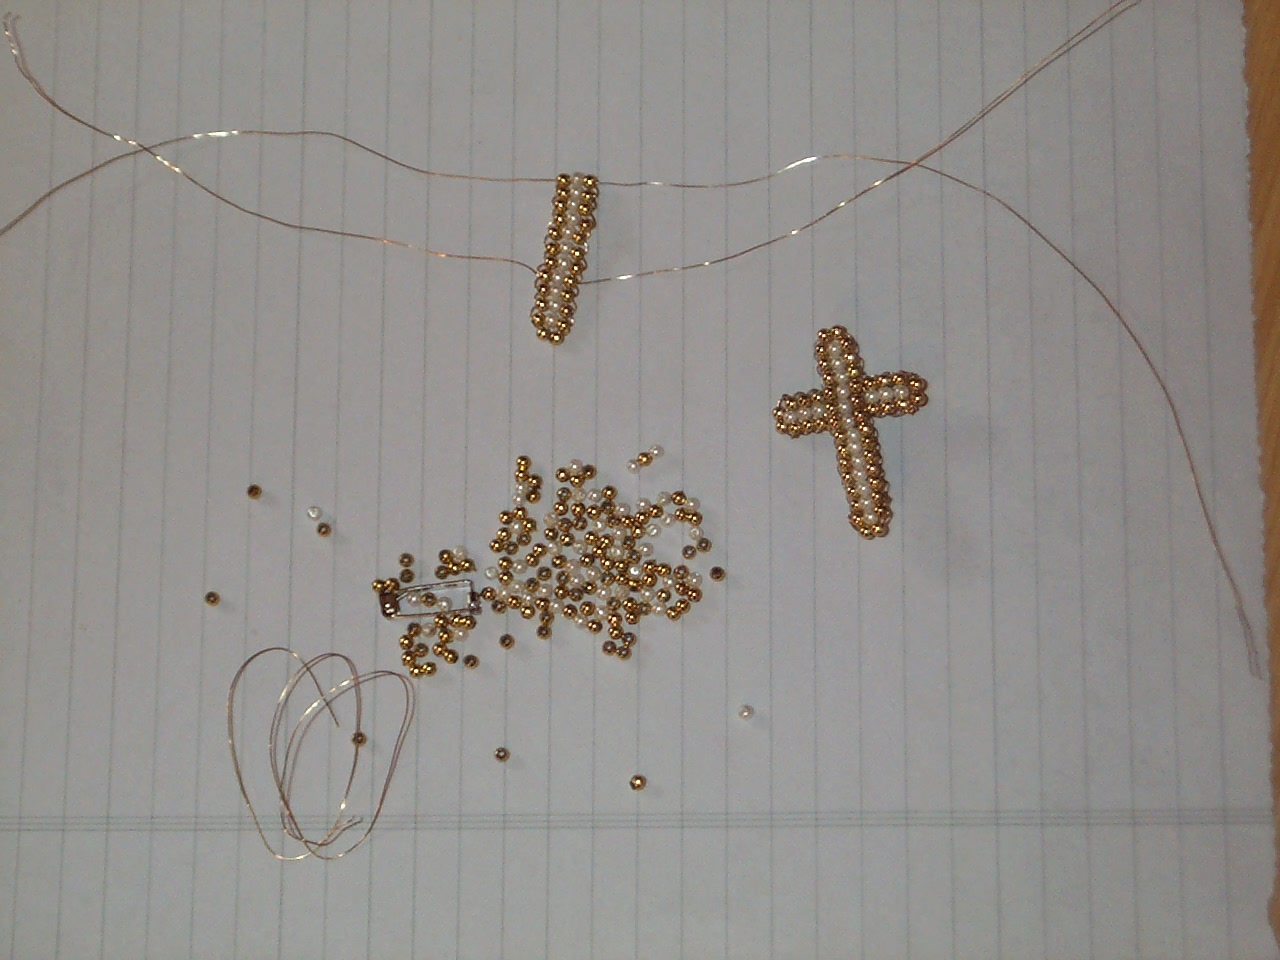 A Lapin Life How To Make A Beaded Wire Cross For